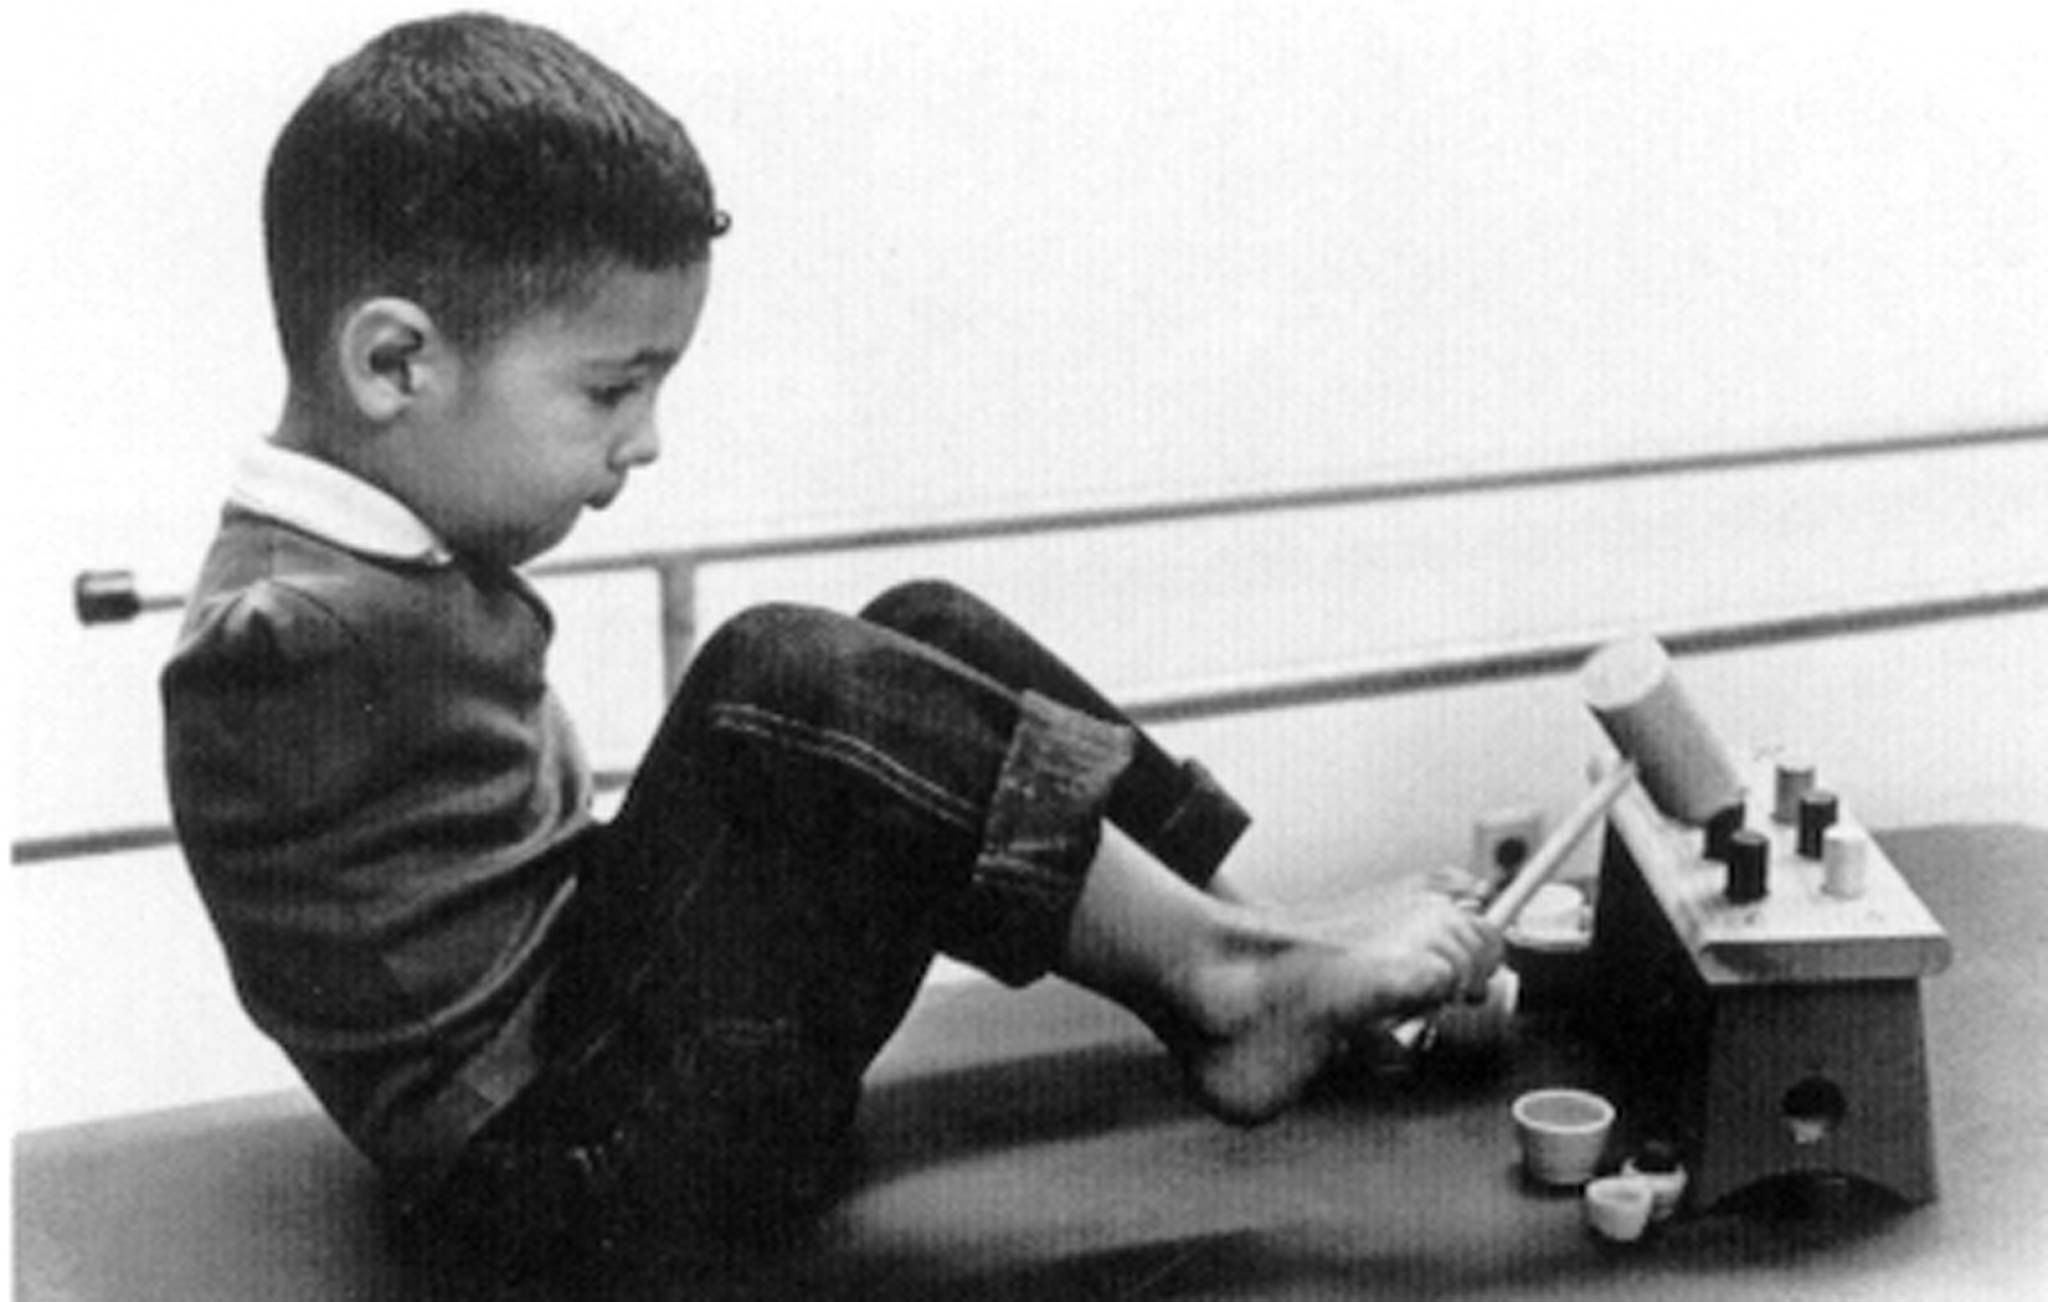 Thalidomide victim Tony Melendez is shown in an undated file photo at age 4. Melendez, who lives in Dallas, is one of a few thousand people around the world living with the birth defects caused by thalidomide.